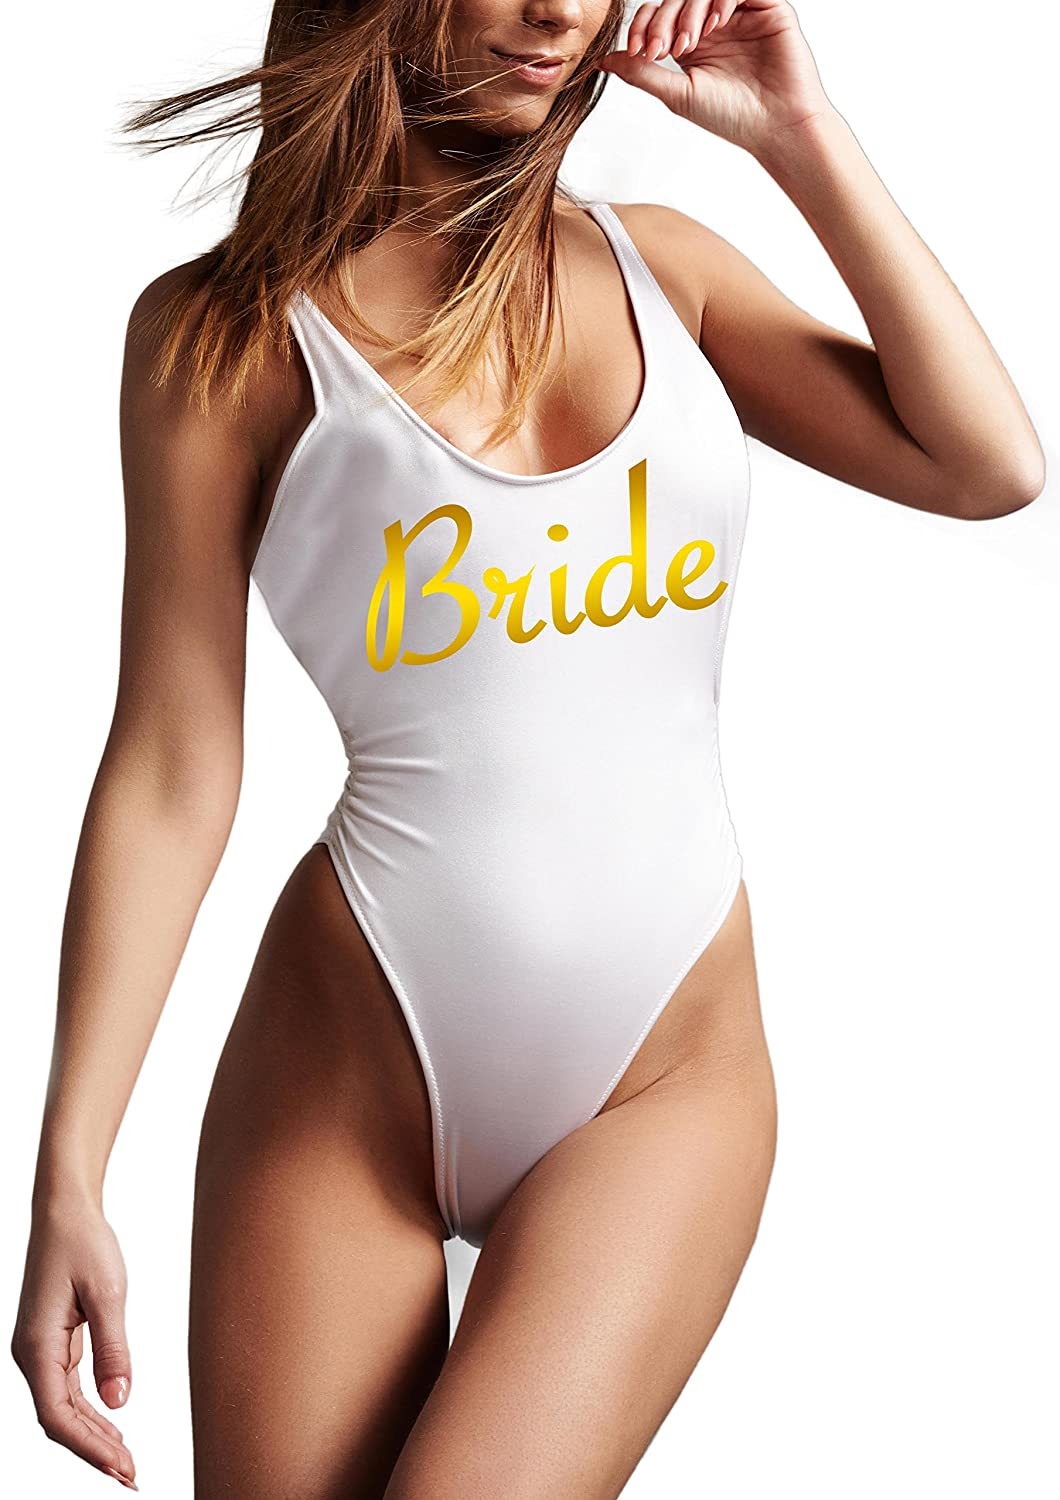 b1bfbd385b8cd White One Piece Swimsuit with BRIDE in Gold foil printing. High Cut Open  Low Back with Padded Cups Perfect for the beach, bachelorette party, bridal  shower- ...